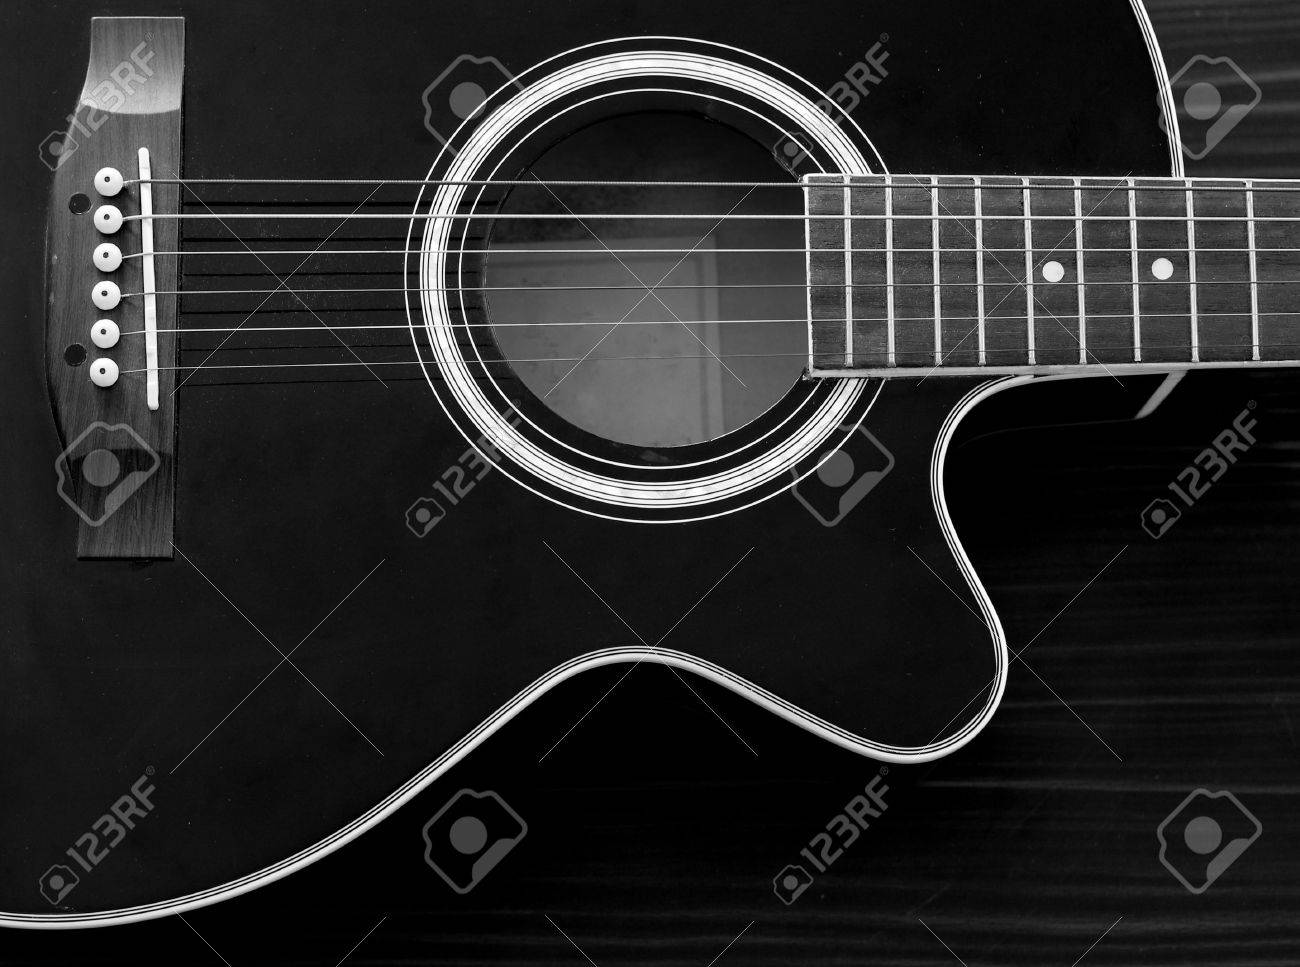 Acoustic Guitar In Black And White On The Table Stock Photo